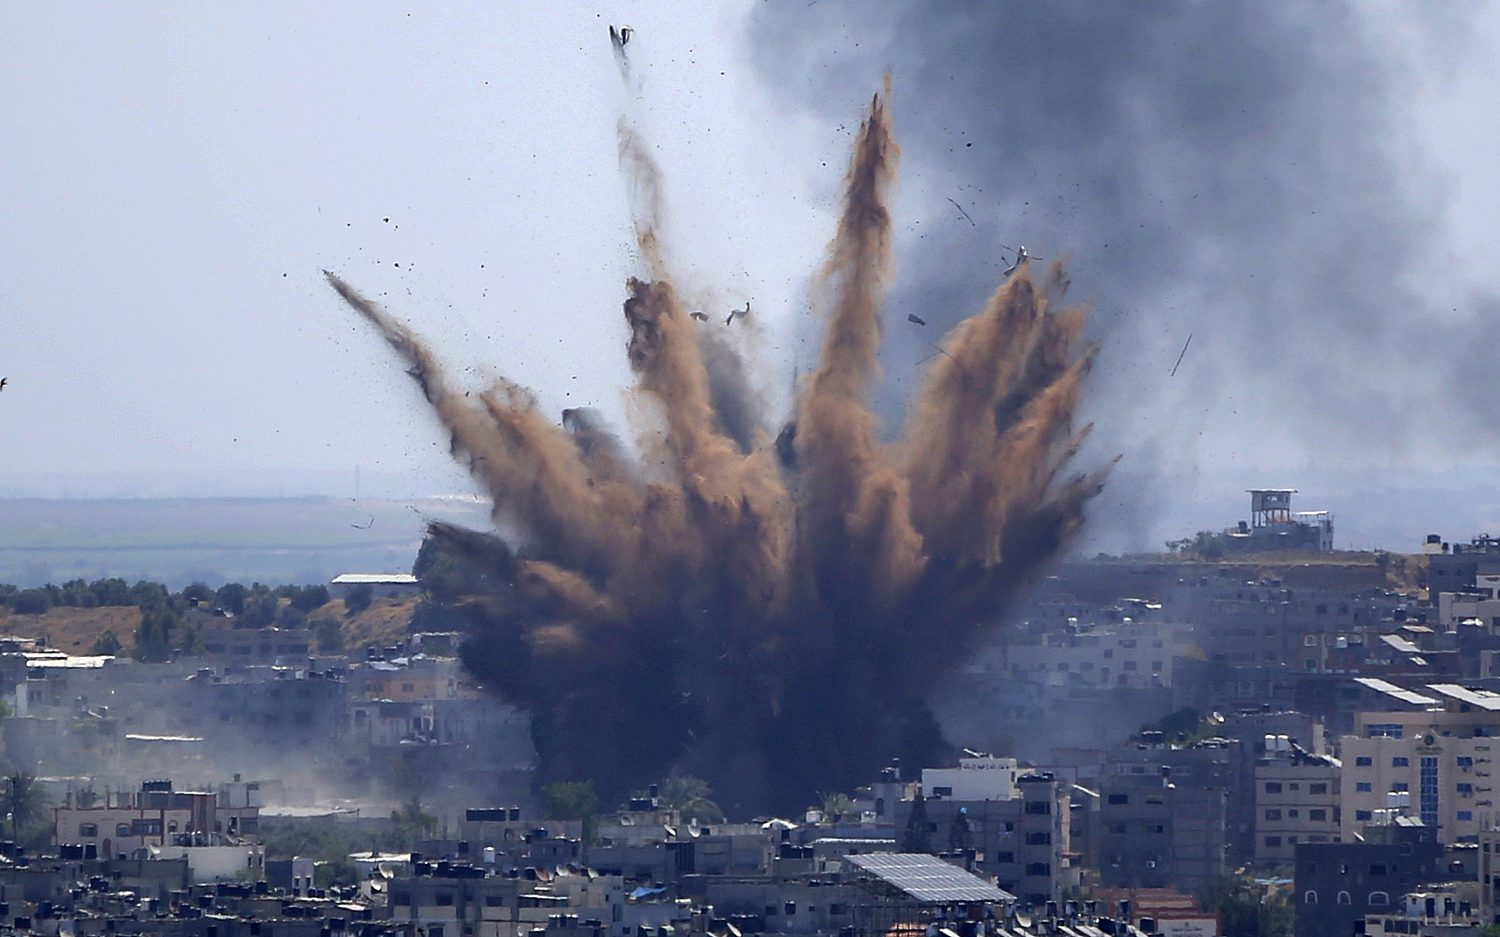 Israel mobilizes for ground invasion in Gaza